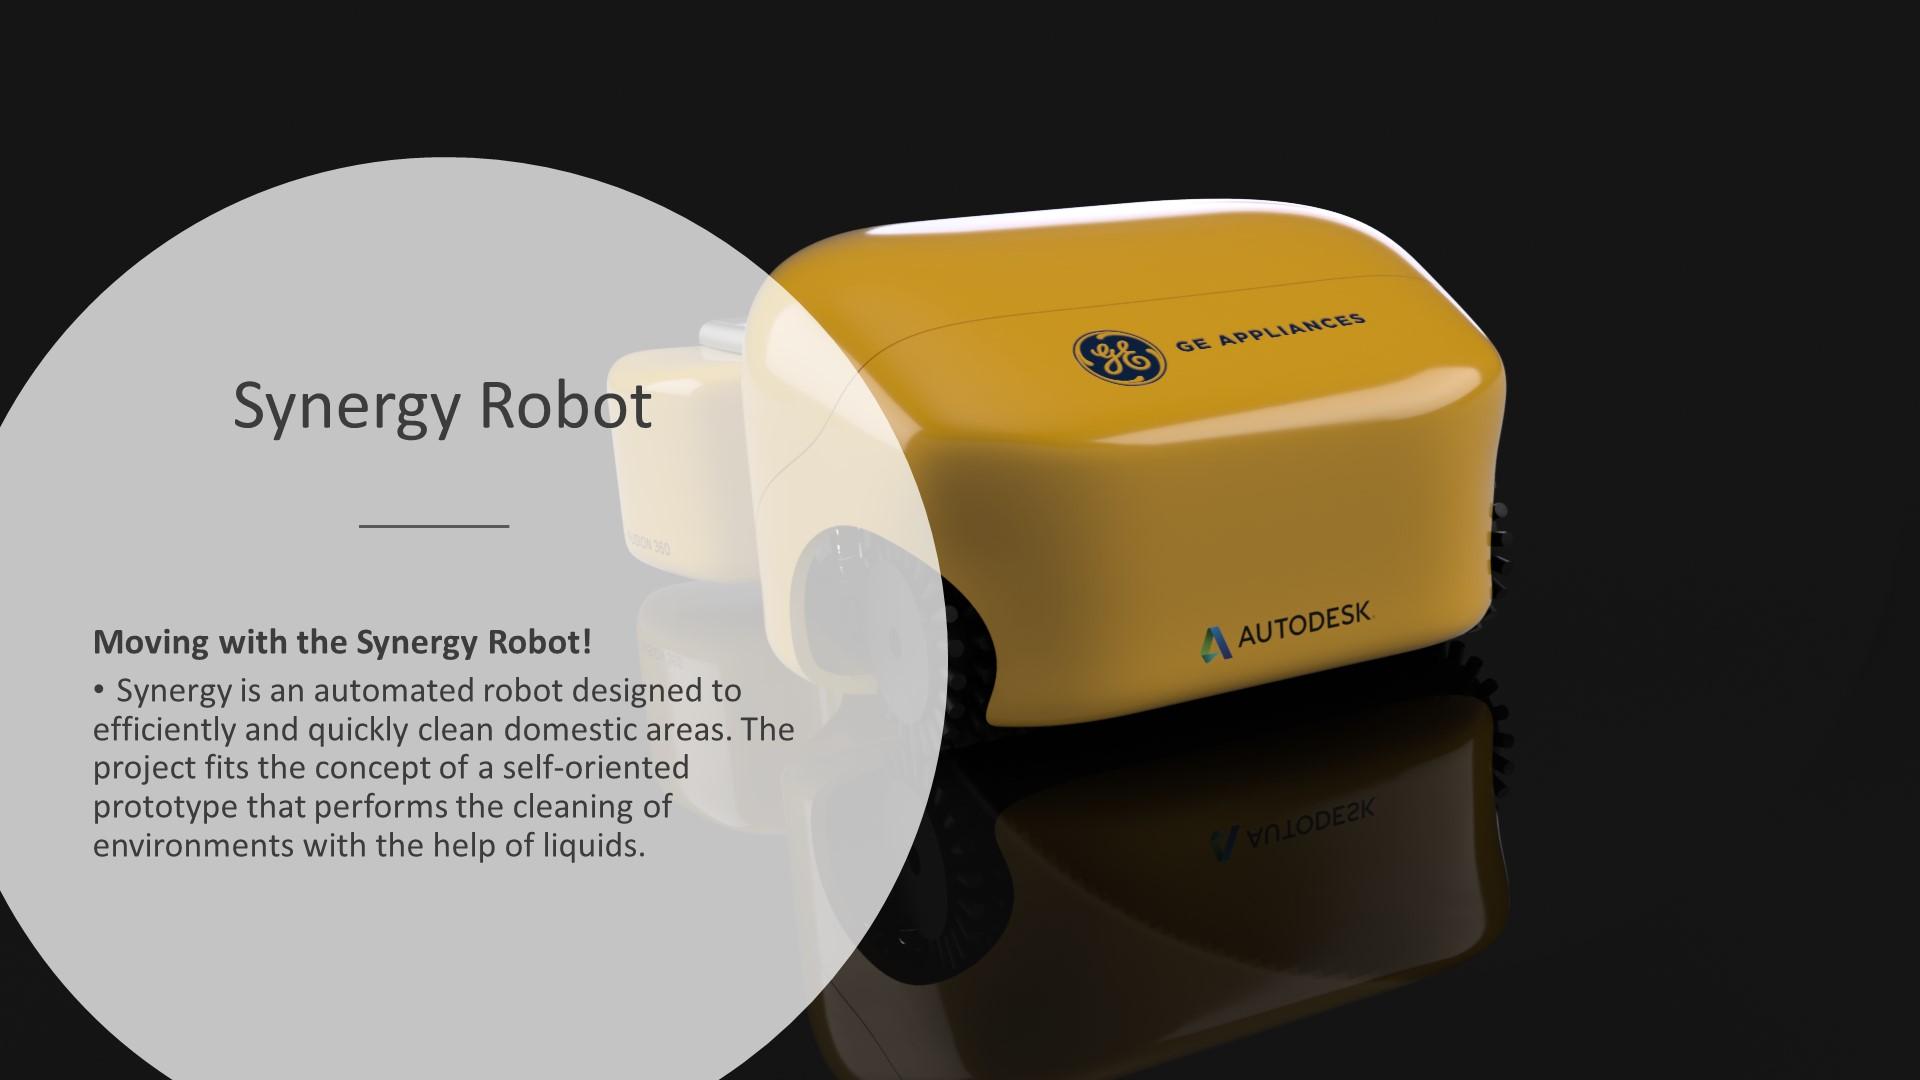 autodesk design for robotics challenge synergy robot domestic